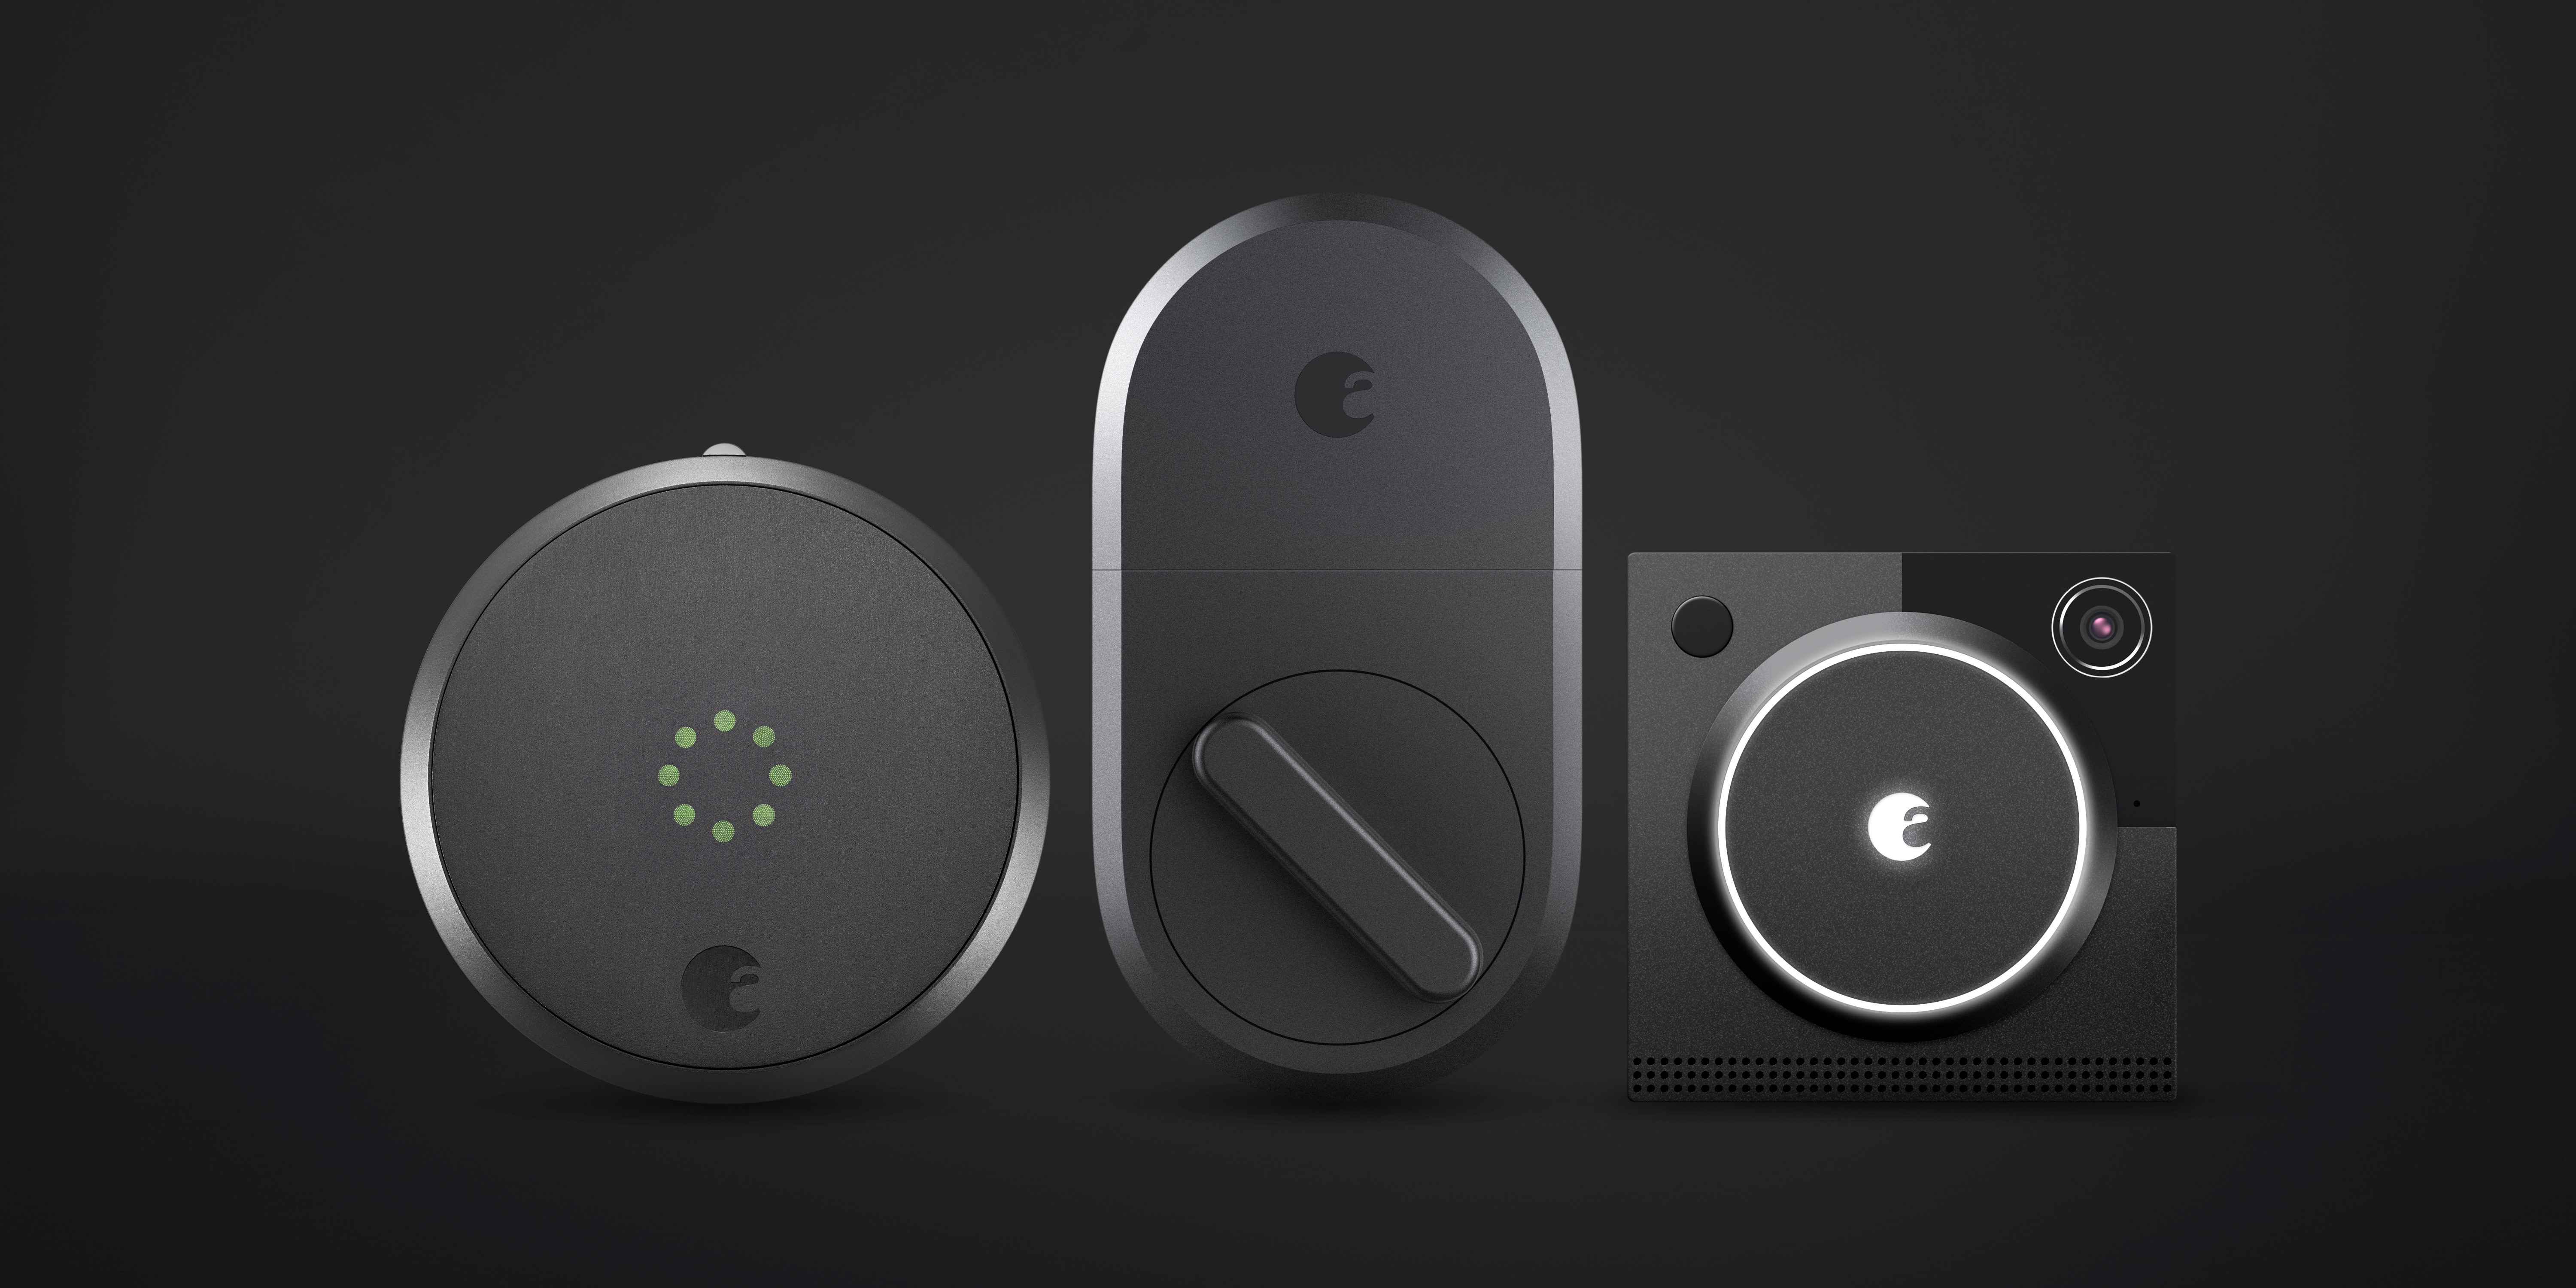 august touts 1 million smart lock and door bell camera customers since 2013